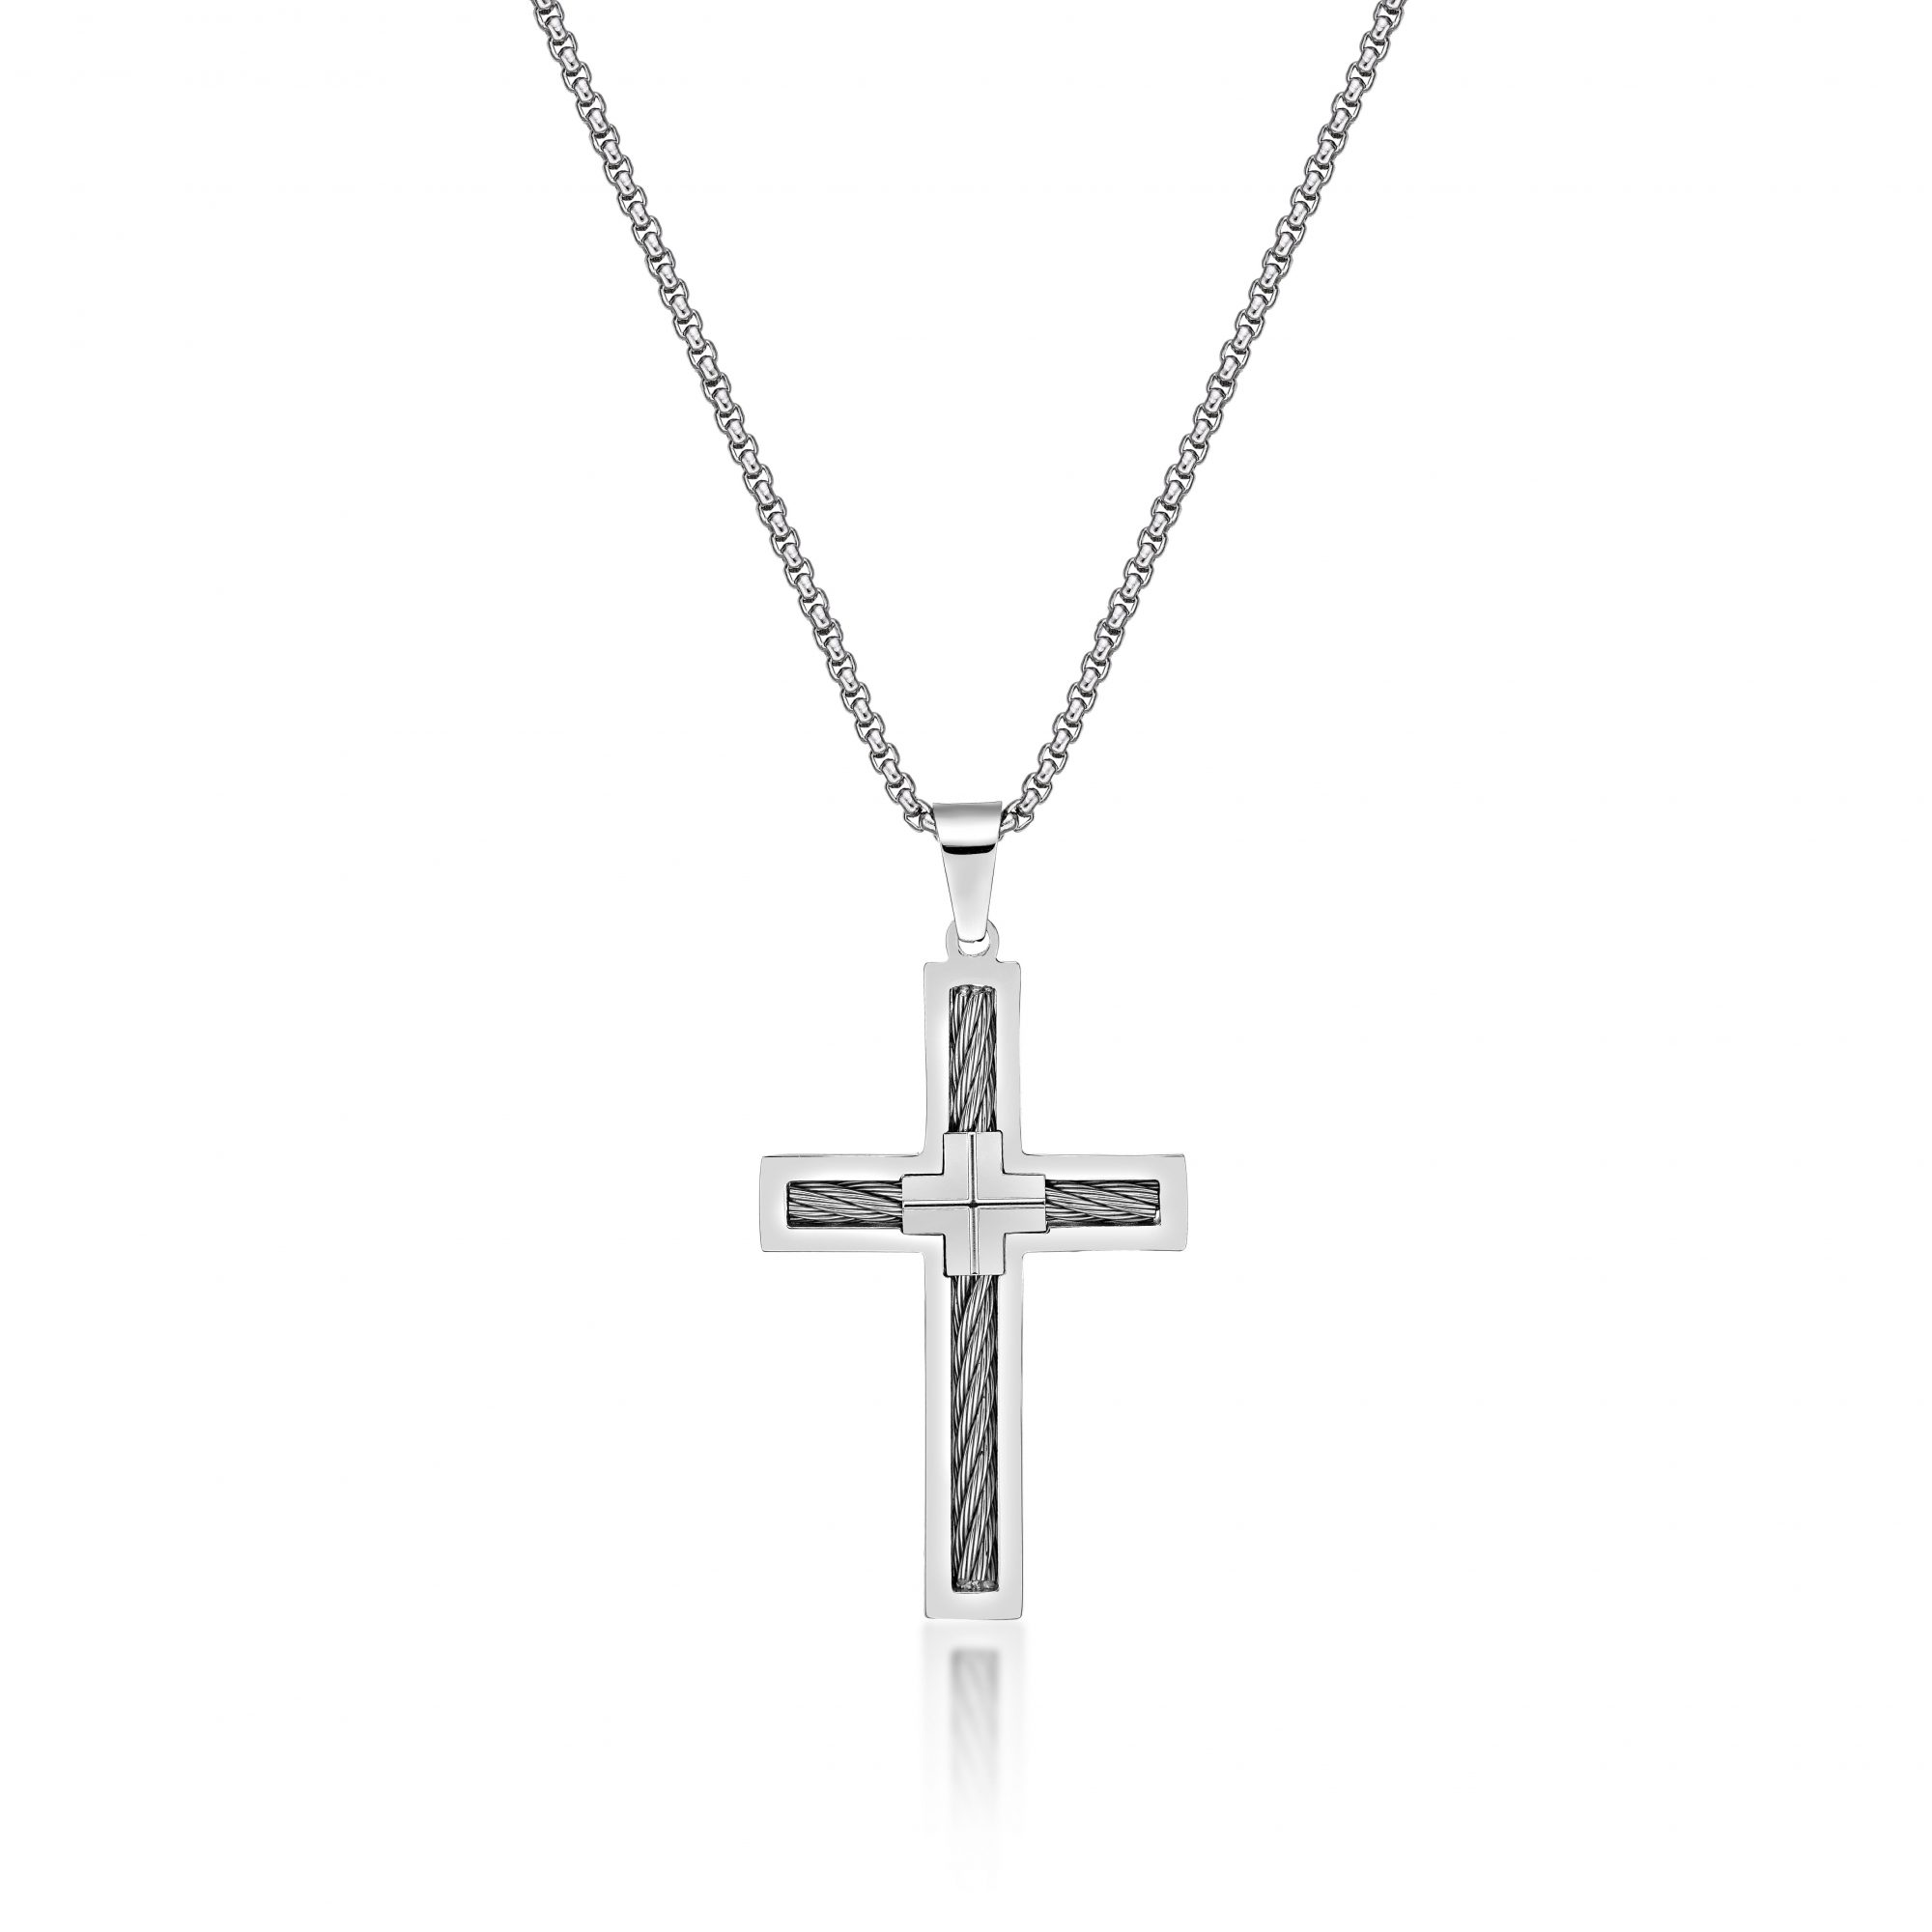 Stainless Steel Cable Cross Pendant - 24 Inch Box Chain